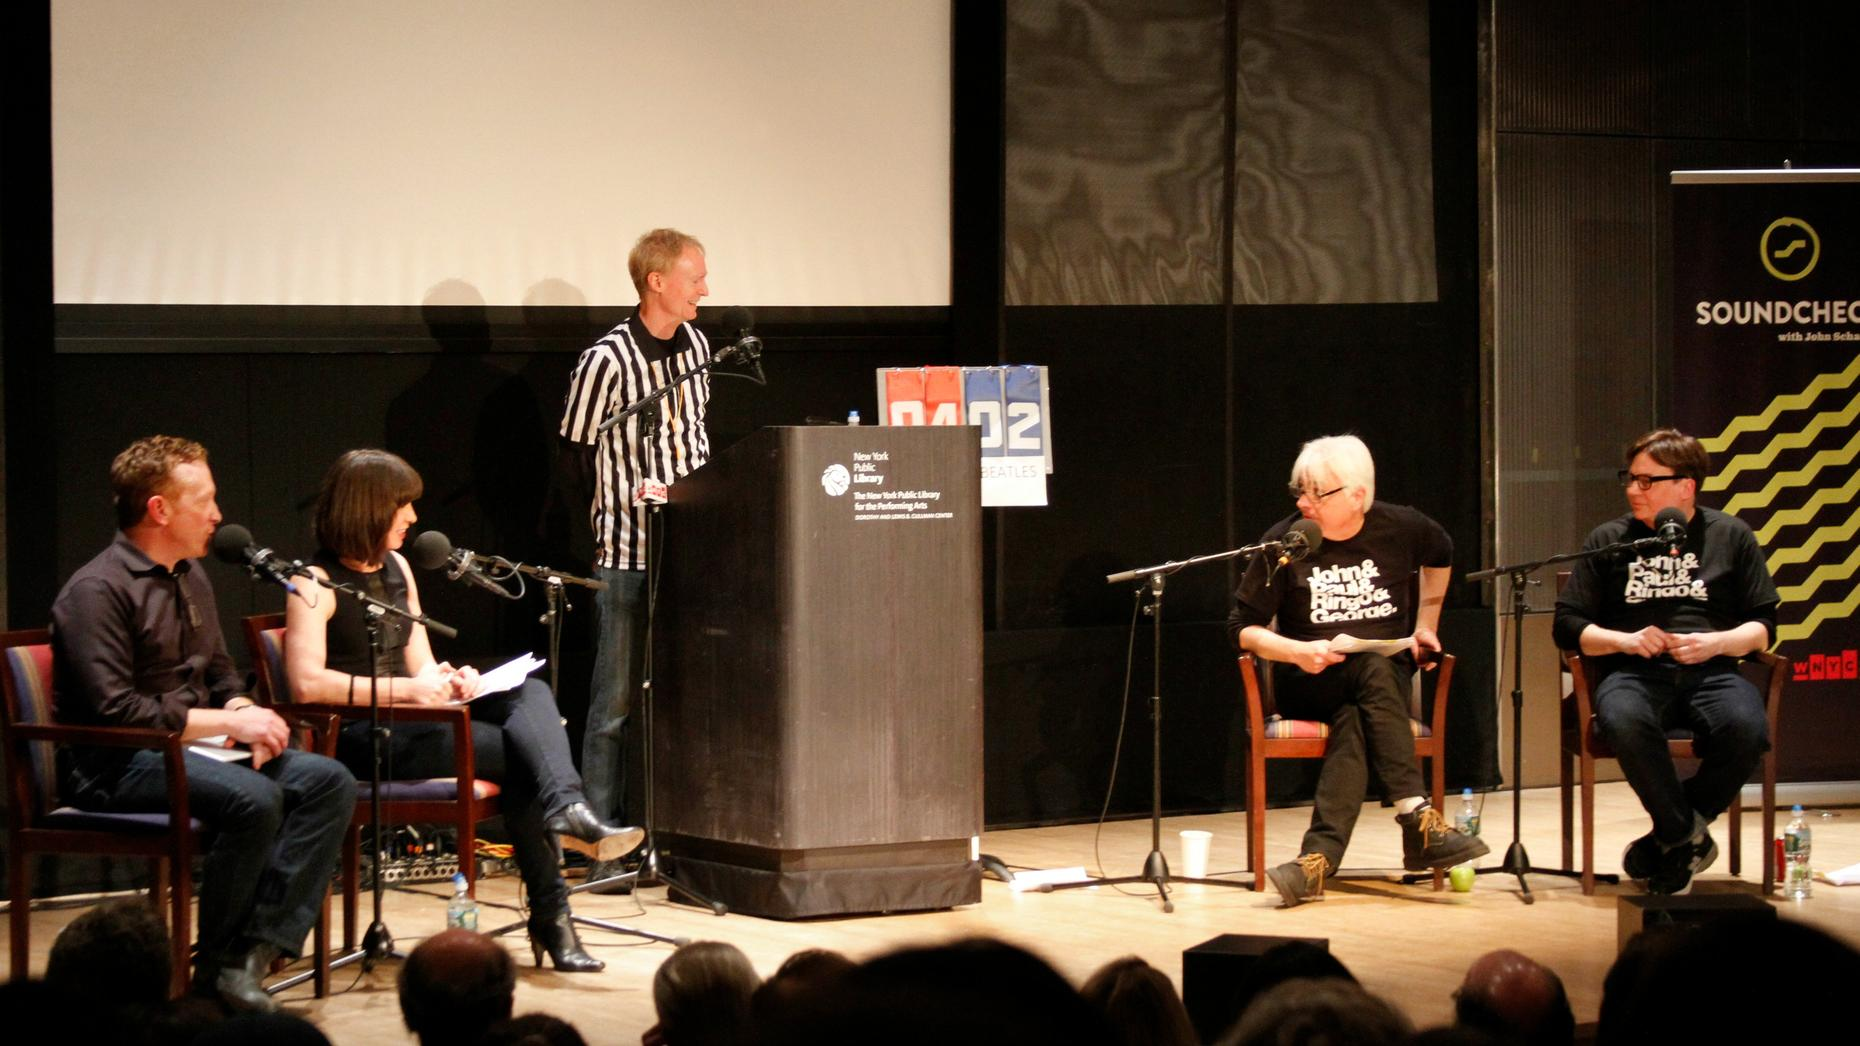 (From left to right) Bill Janovitz, Ophira Eisenberg, John Schaefer, Paul Myers, Mike Myers on stage at the New York Public Library for the Performing Arts